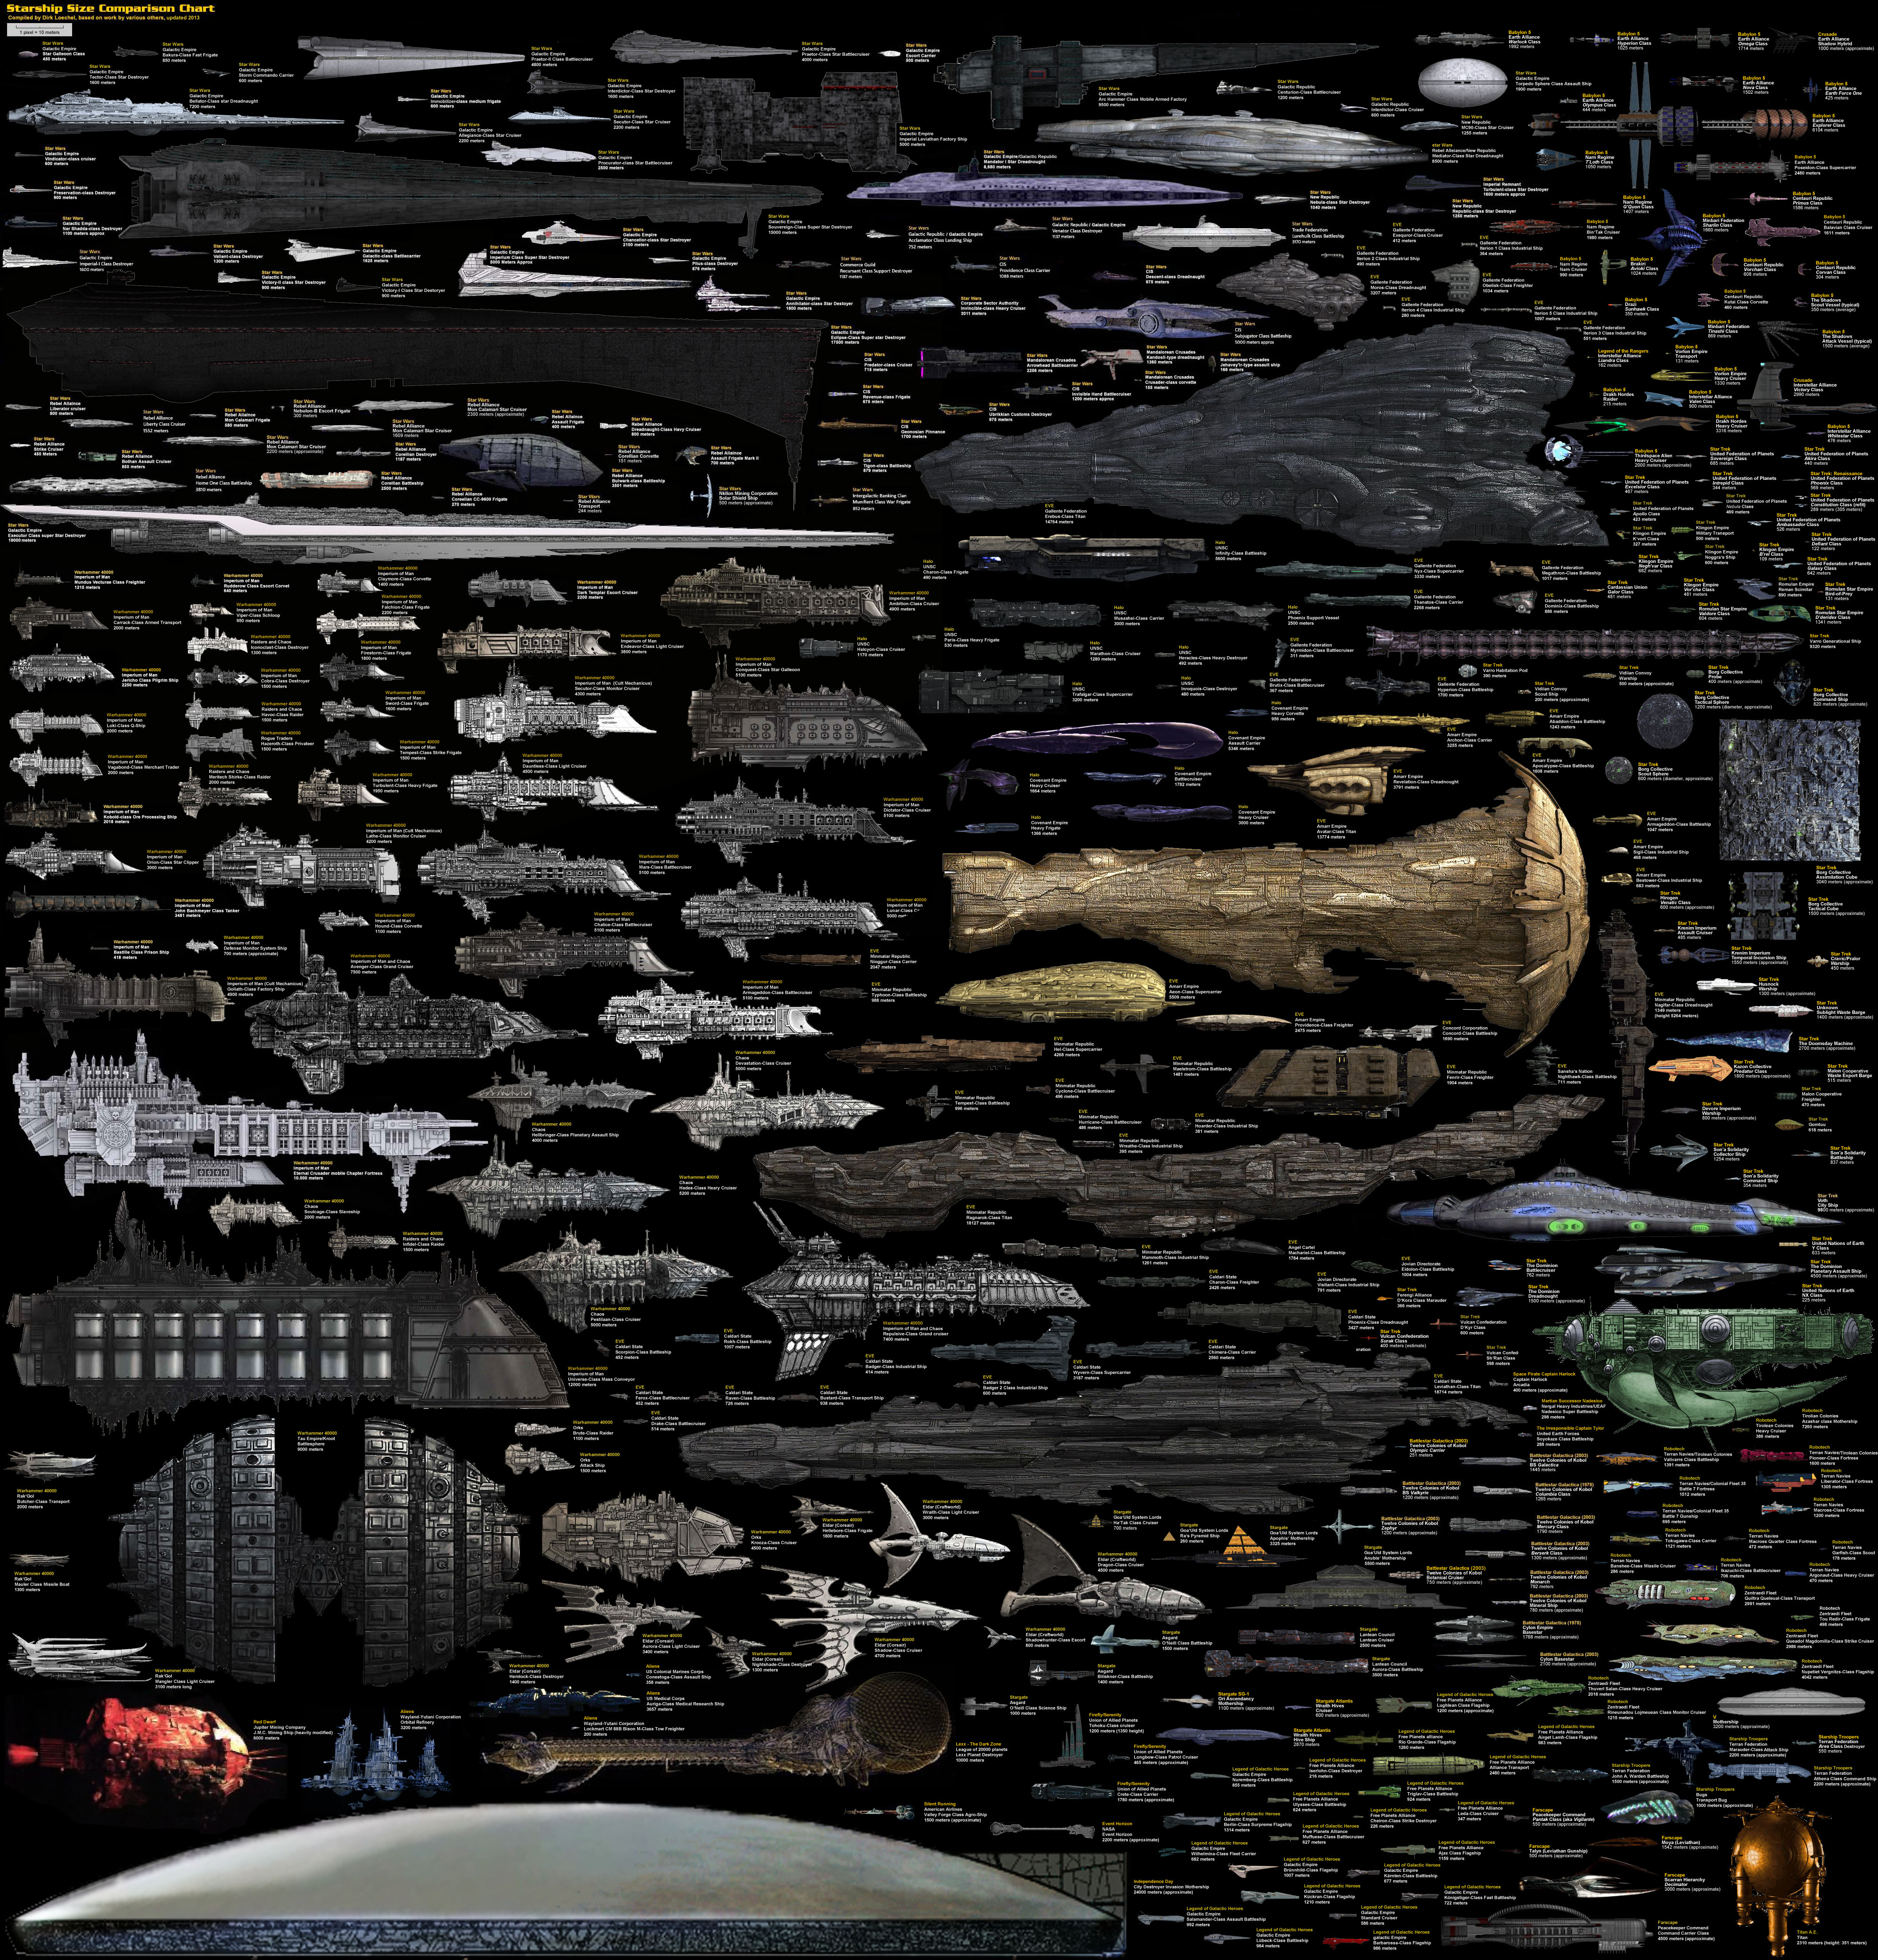 Every Sci-Fi Starship Ever In One Awesome Poster